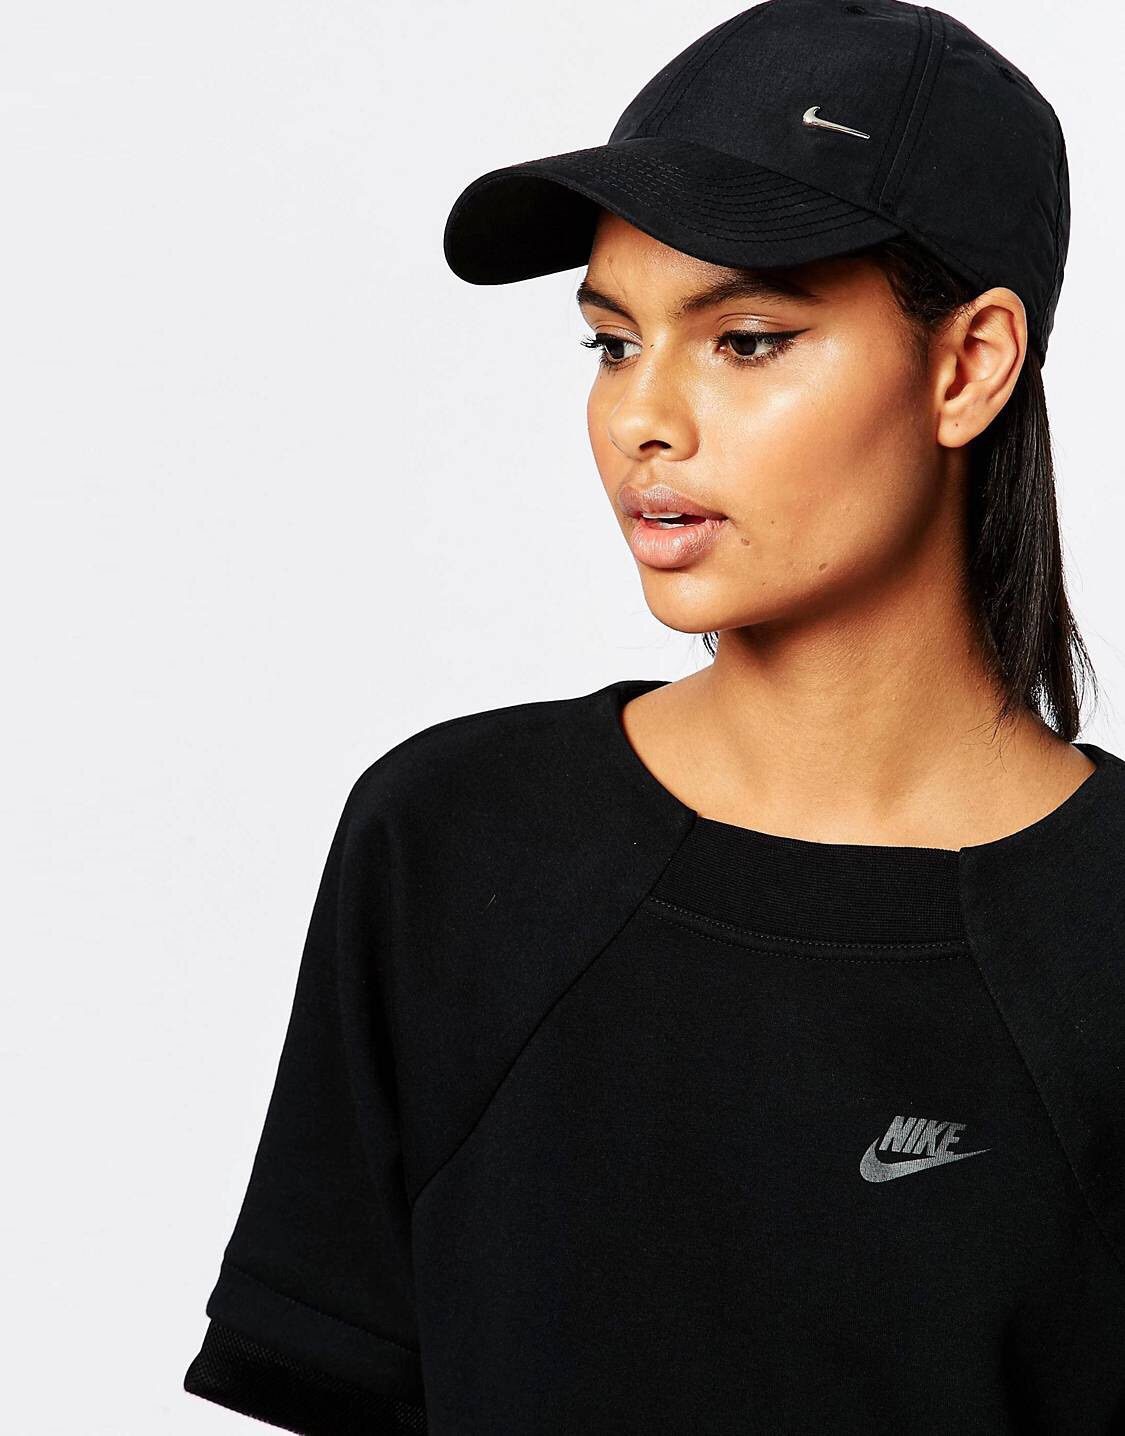 Nike Swoosh Hat - My love for this hat is eternal tbh. I'm always returning baseball caps cos the fits never just right